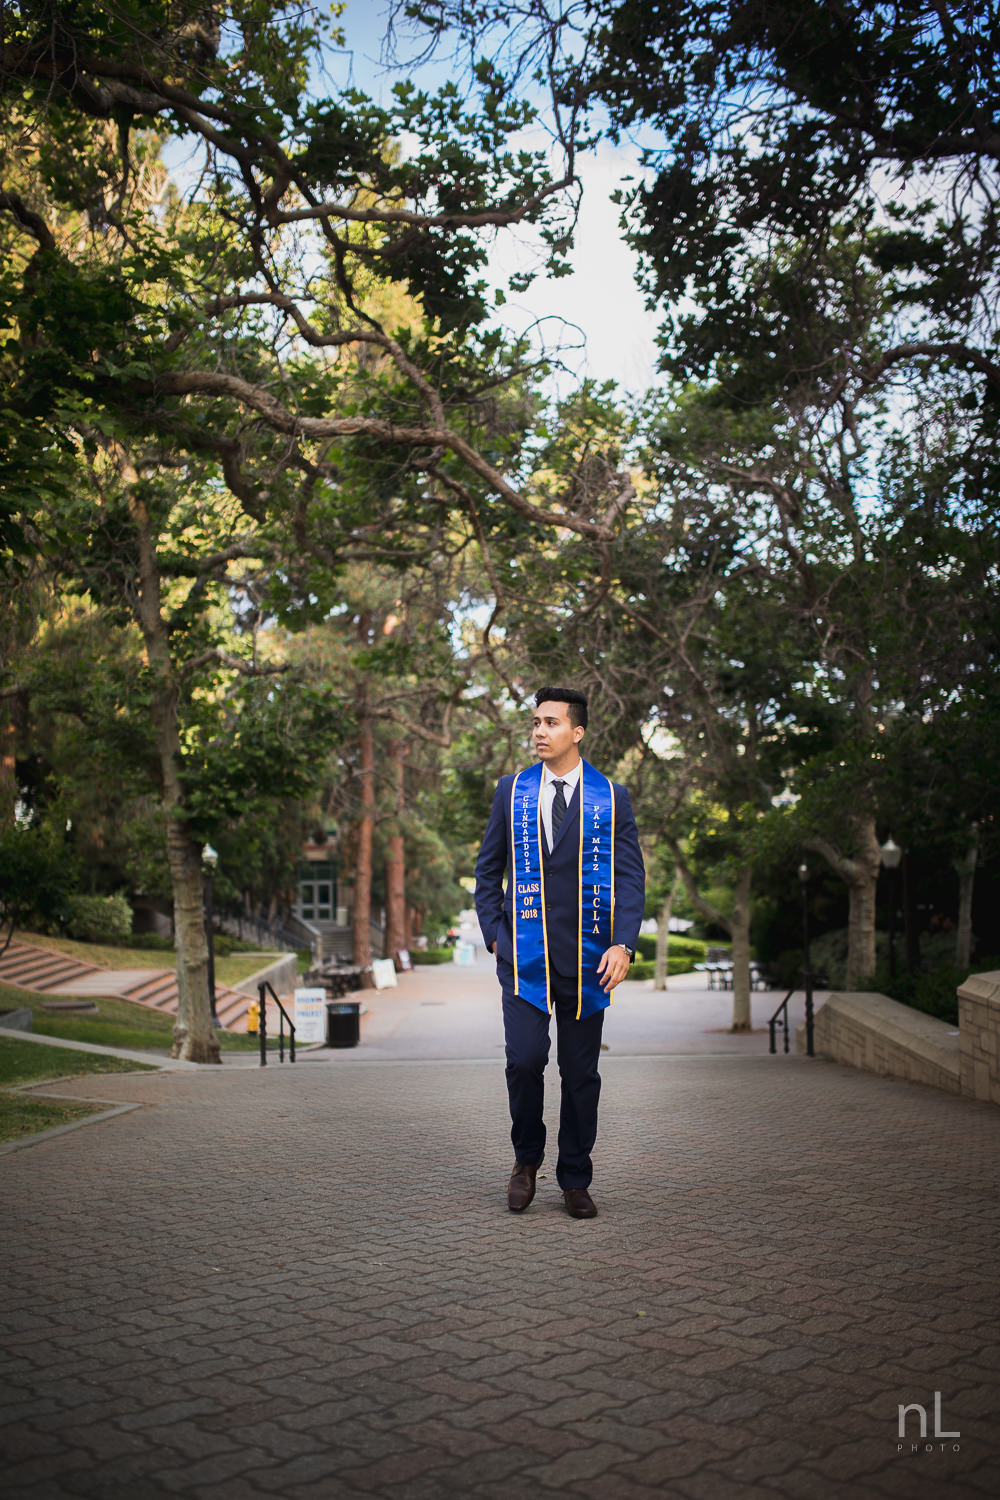 UCLA Class of 2019 graduate wearing suit and tie and graduation sash walking down Bruinwalk.